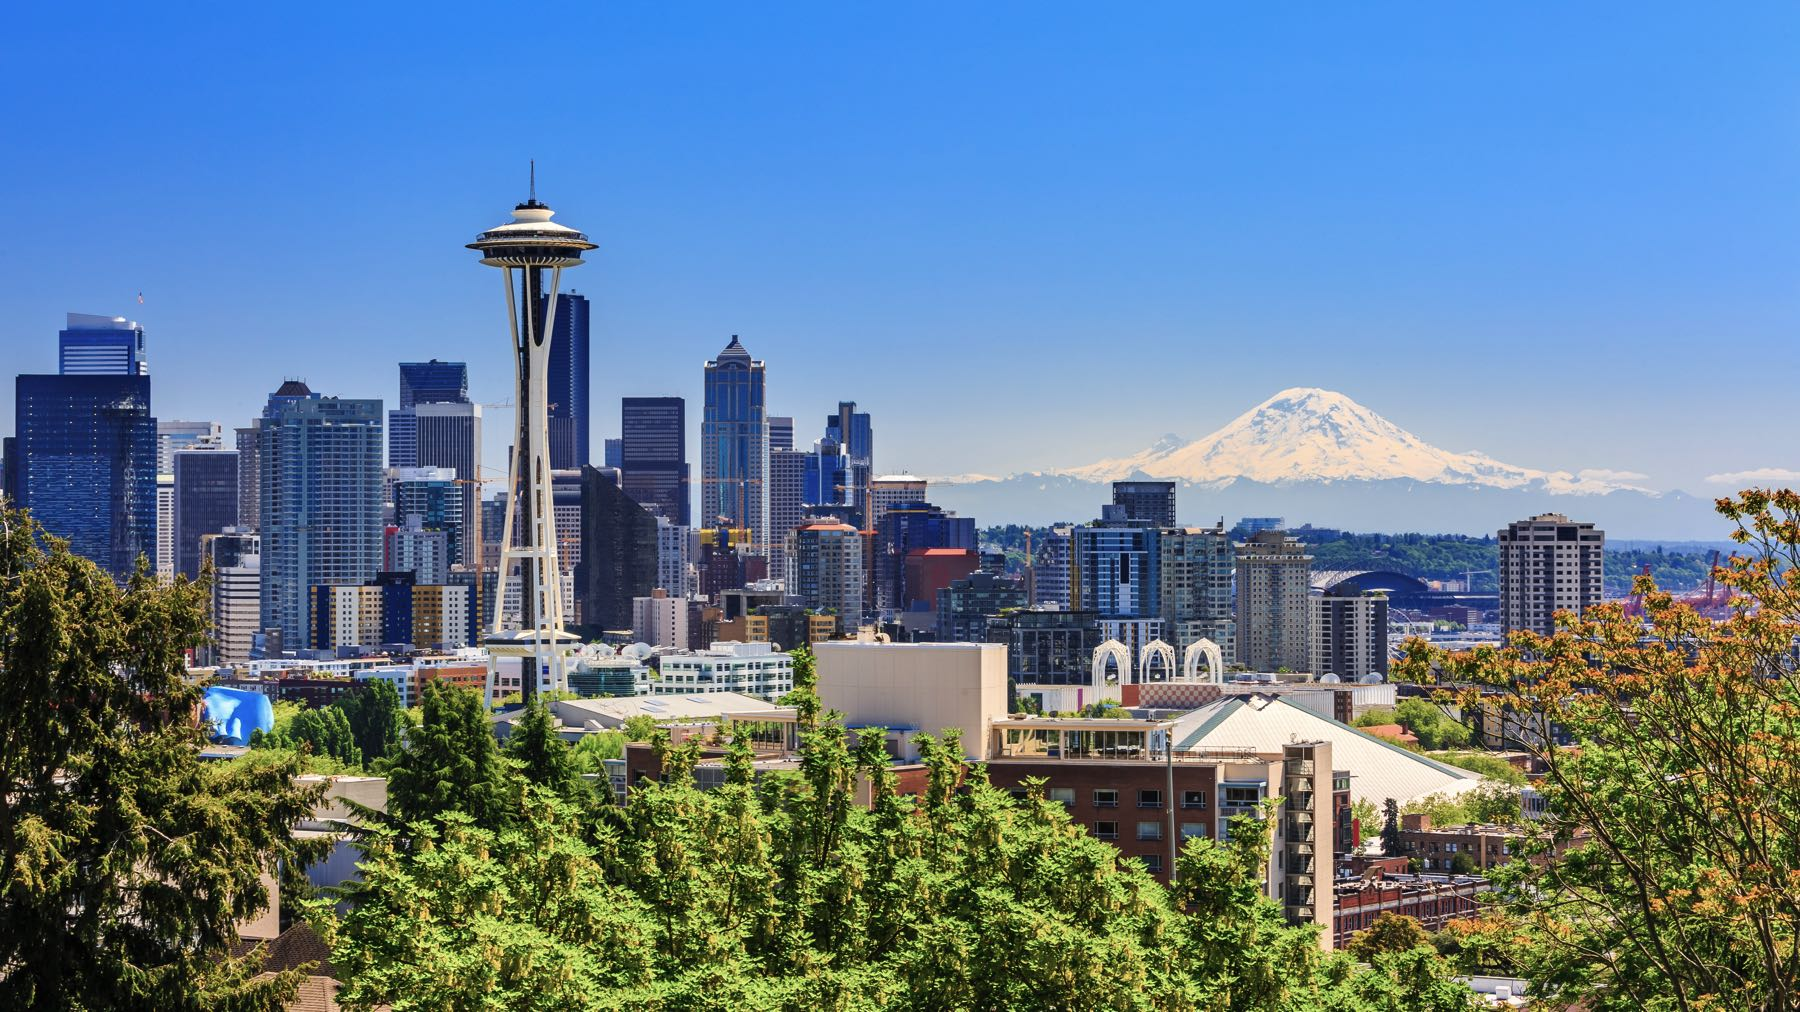 15 Best Things To Do in Seattle, Washington